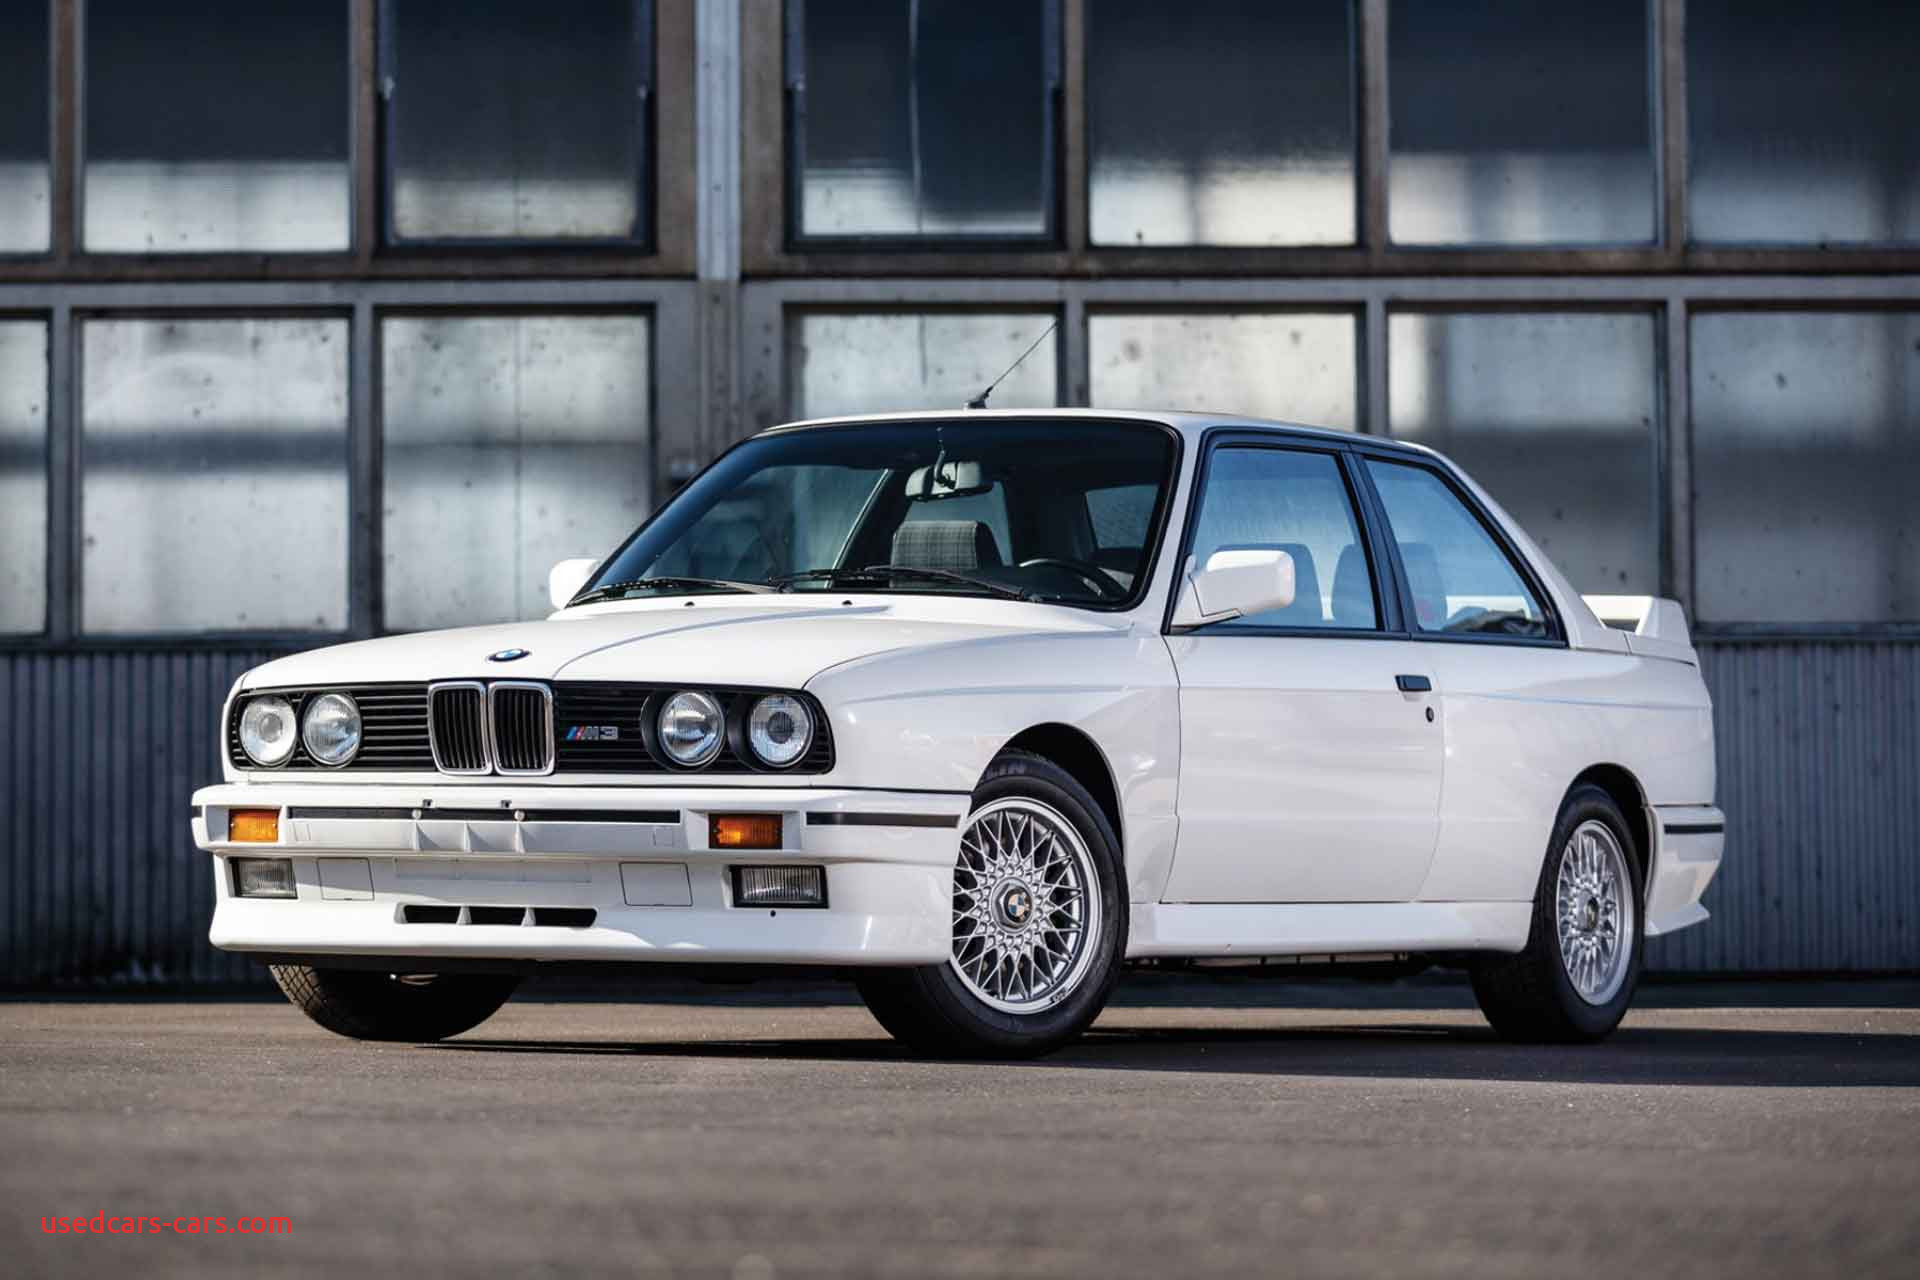 Bmw M3 1988 Awesome 1988 Bmw M3 Coupe | used cars